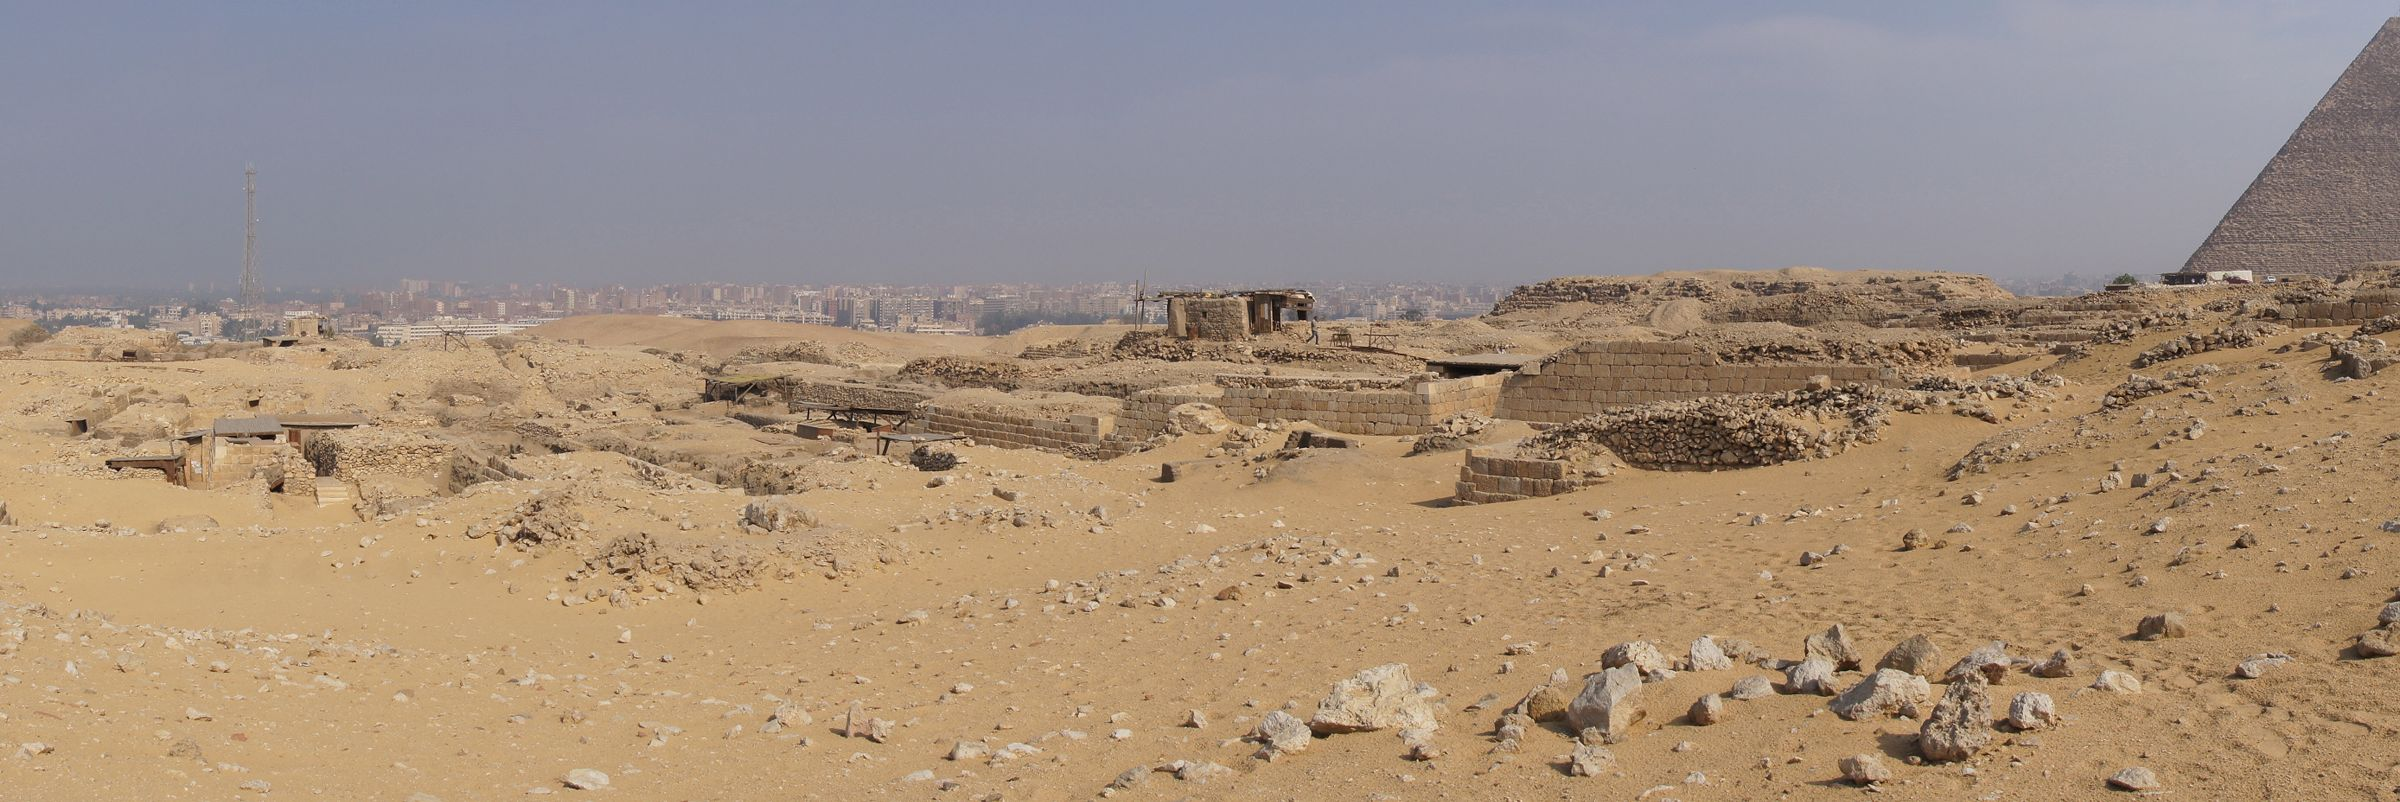 Western Cemetery: Site: Giza; View: G 2000, Cemetery G 1200, Cemetery G 1700, Cemetery G 1800, Khufu Pyramid